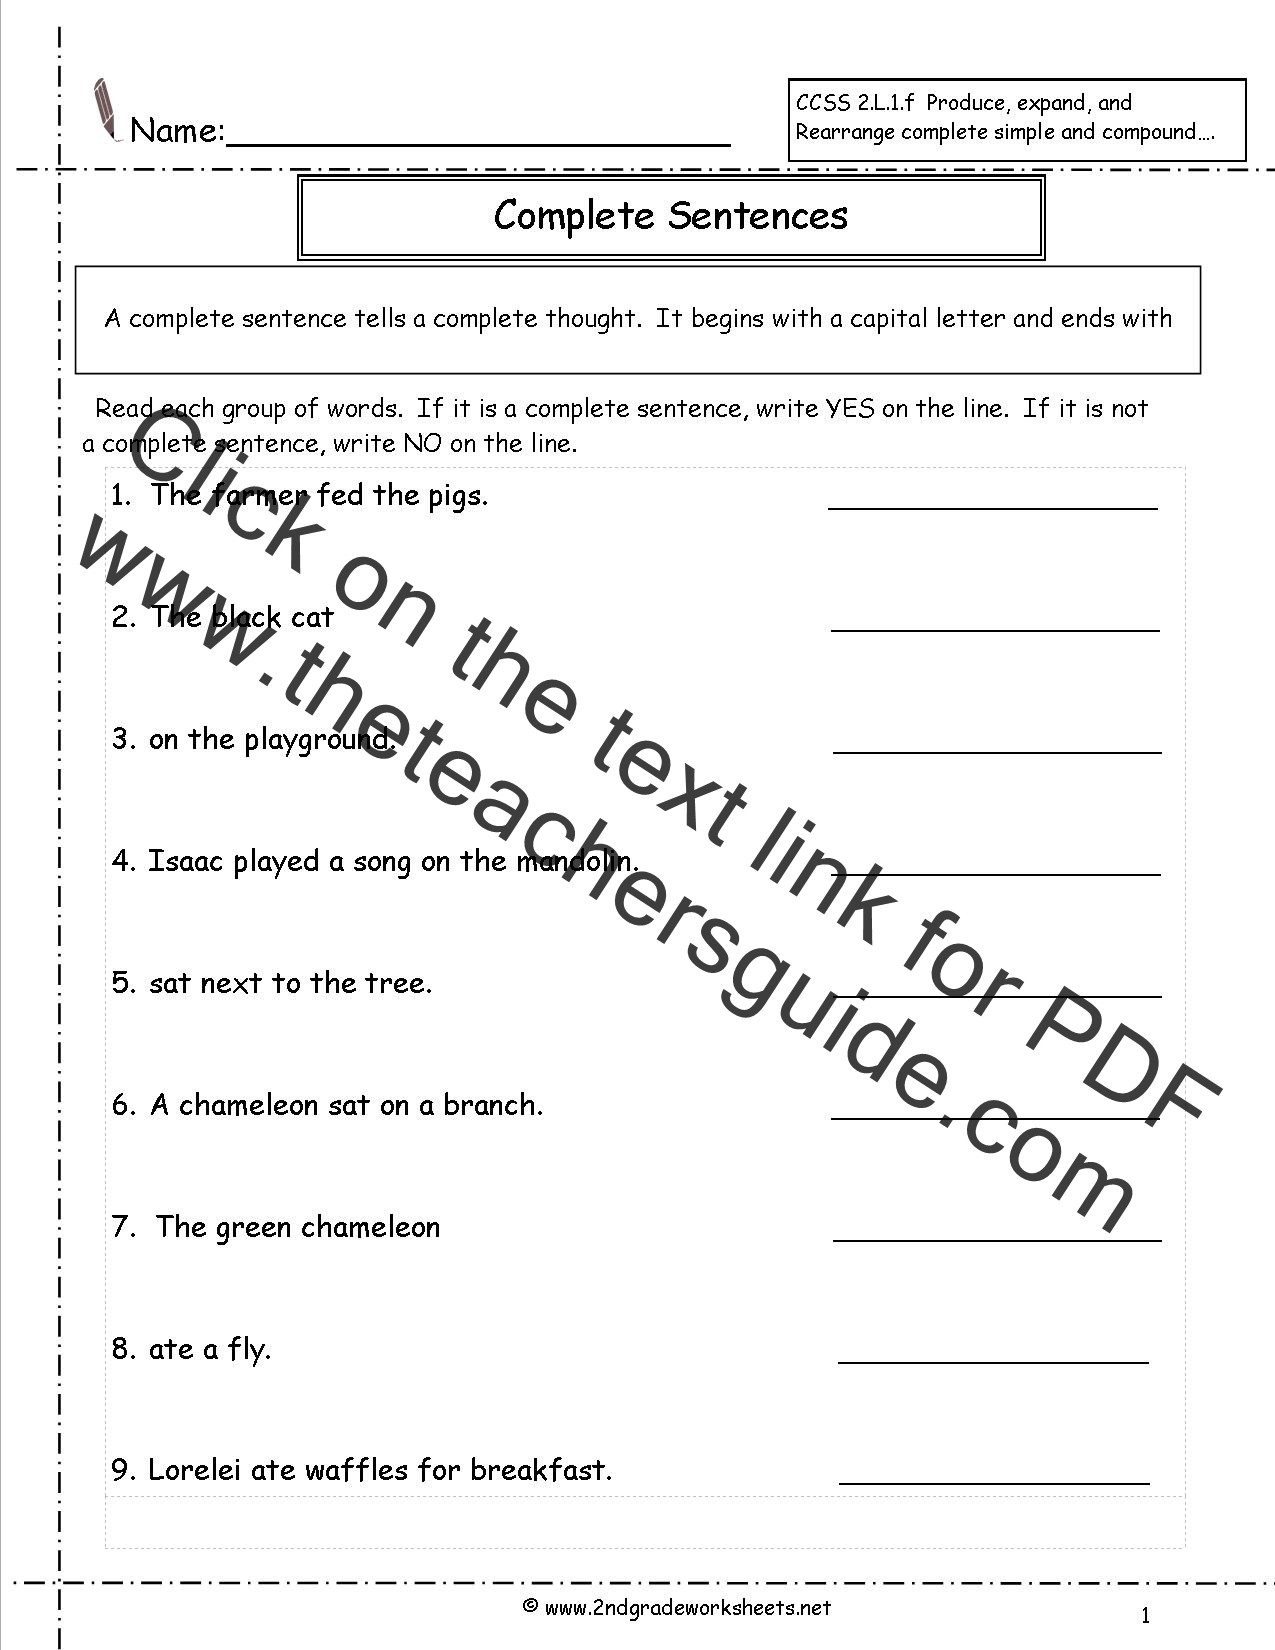 Complete Sentences Worksheet 4th Grade Second Grade Sentences Worksheets Ccss 2 L 1 F Worksheets